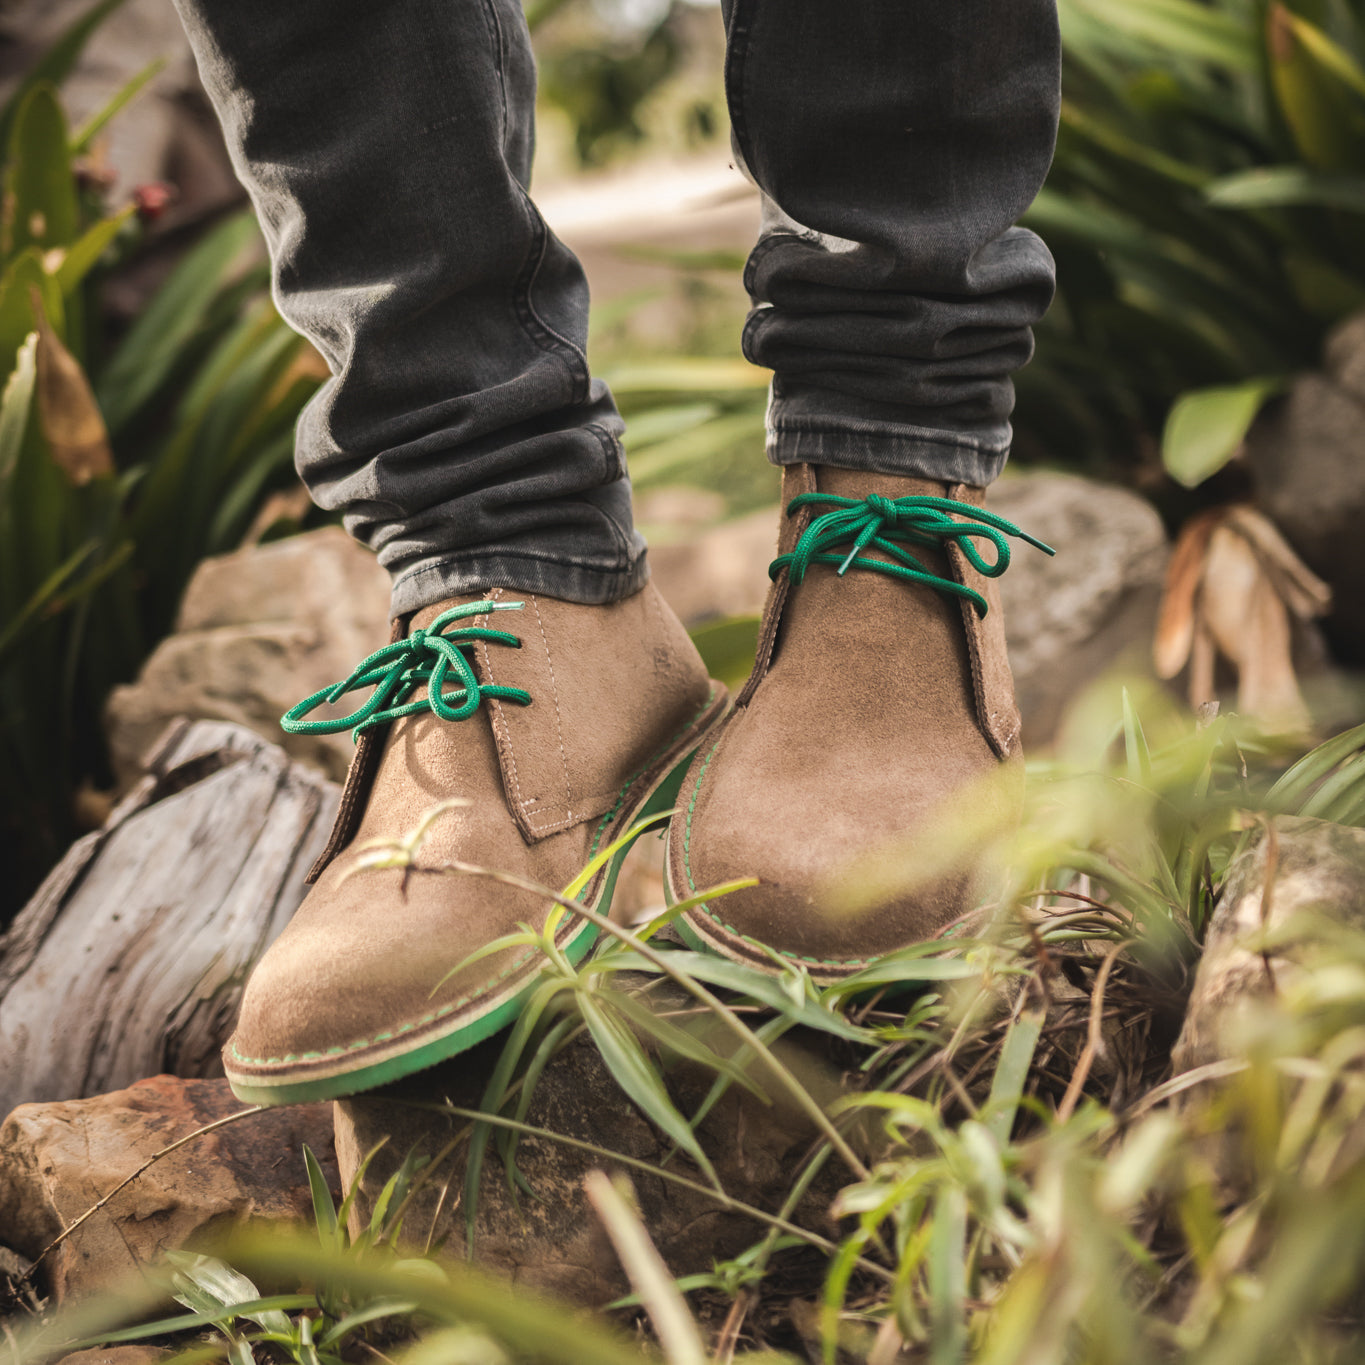 Veldskoen shoes and boots or known as vellies heritage boot ethically and sustainably handcrafted in South Africa sold in united states man wearing green veldskoen and black jeans standing in a garden